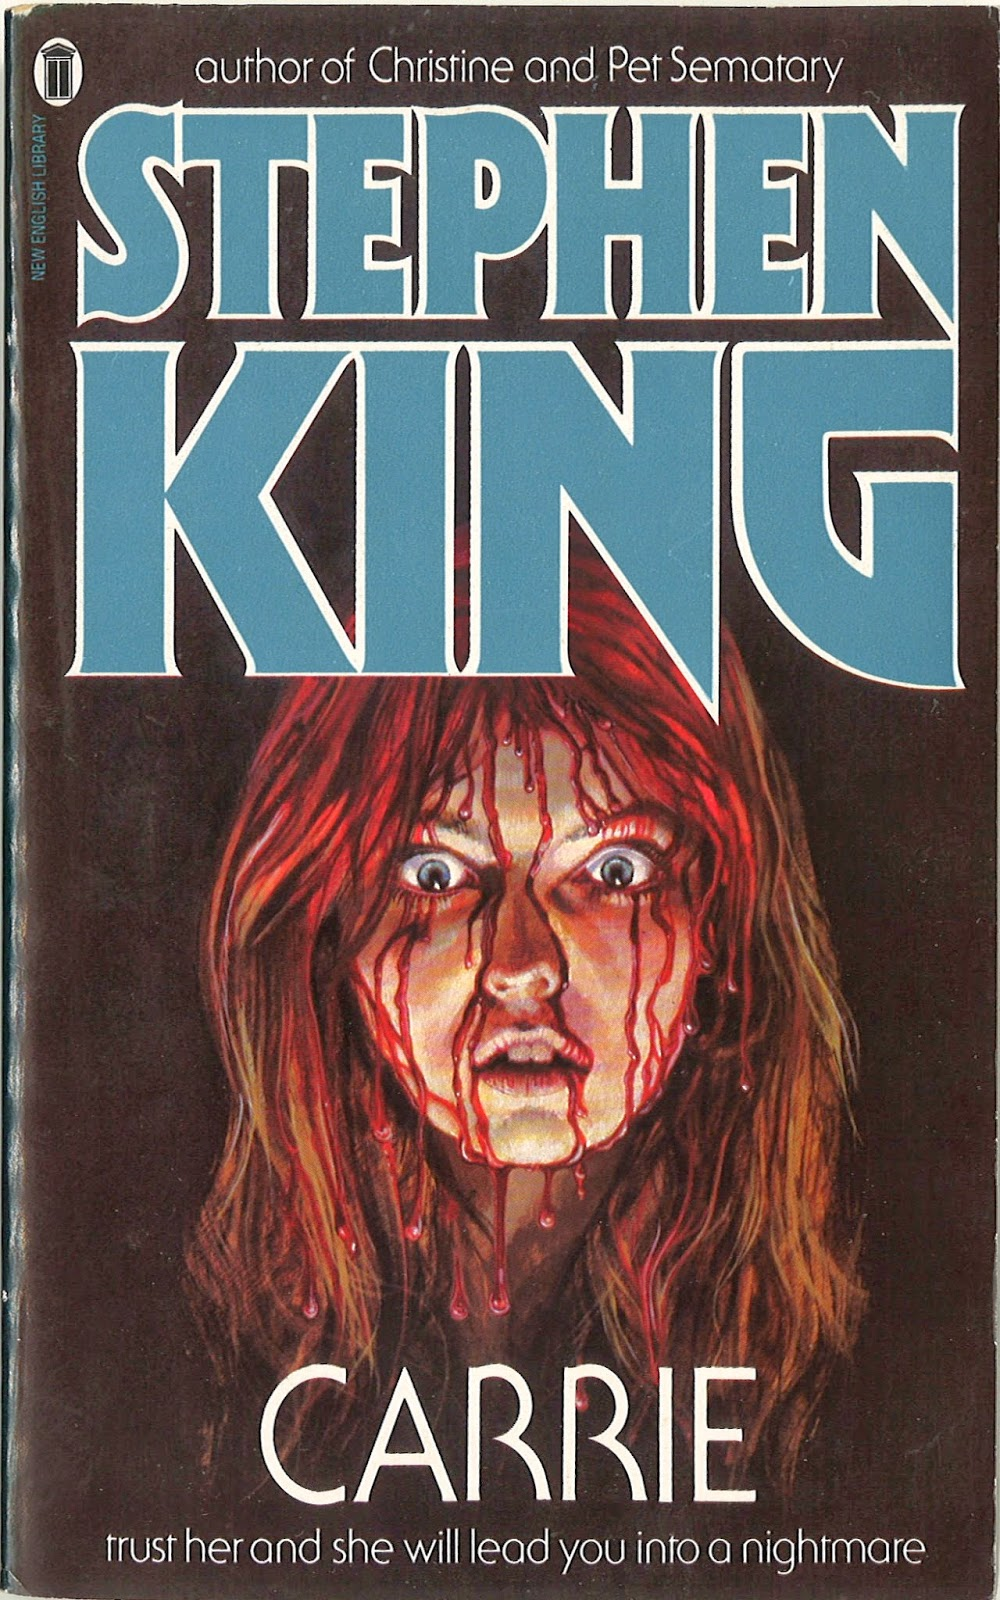 strange tales 2014 further to my review of carrie which i blogged here my essay on the novel has now gone live at matthew craig s readerdad co uk site as part of his